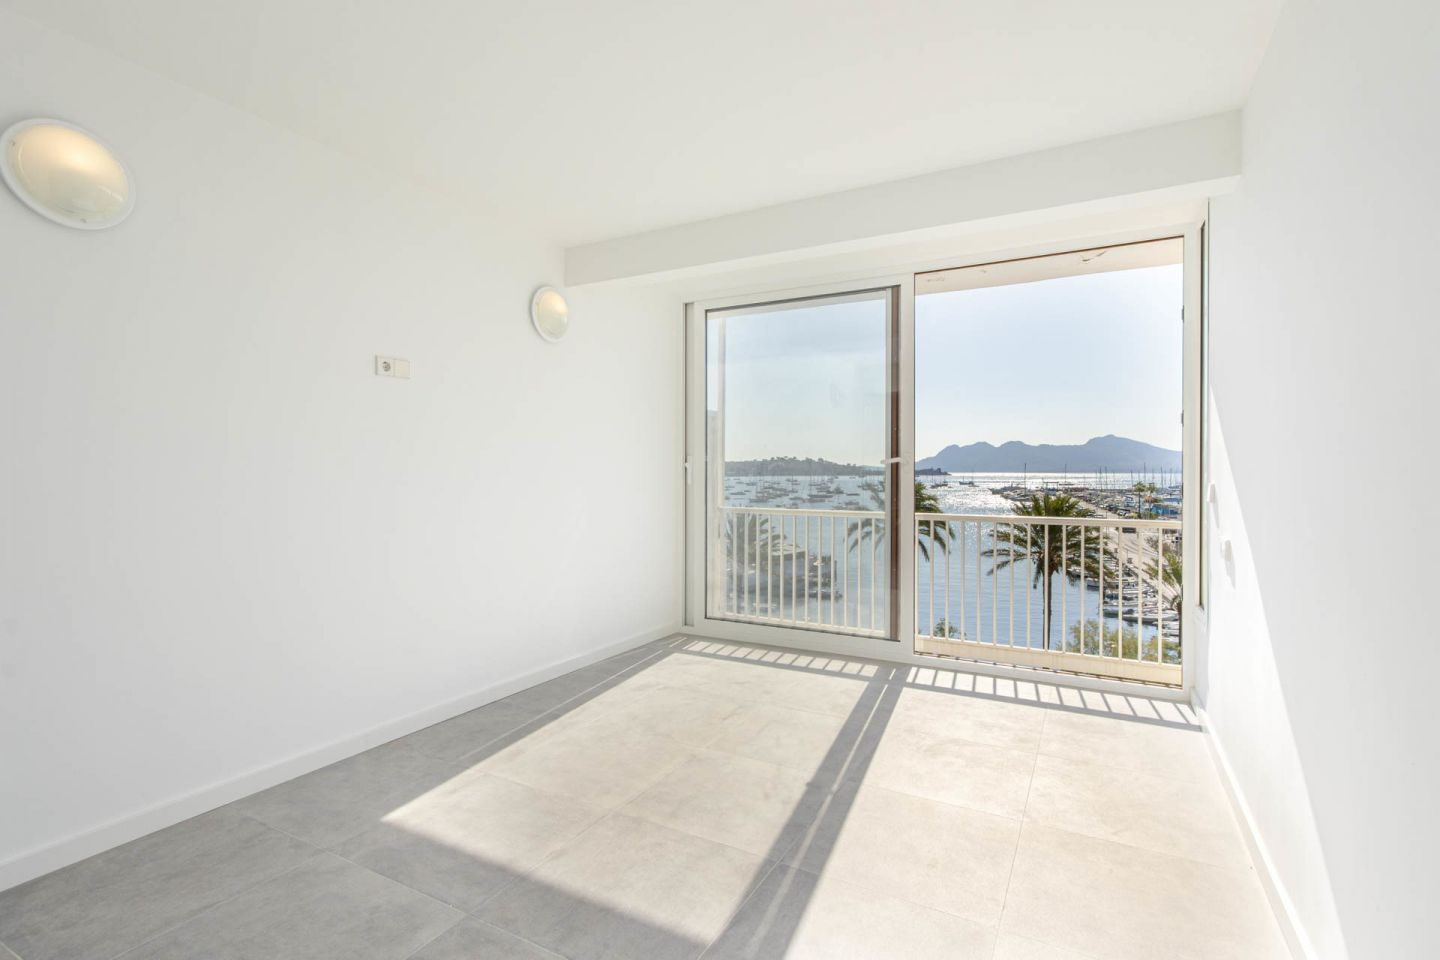 4 Bed Apartment for sale in PUERTO POLLENSA 11